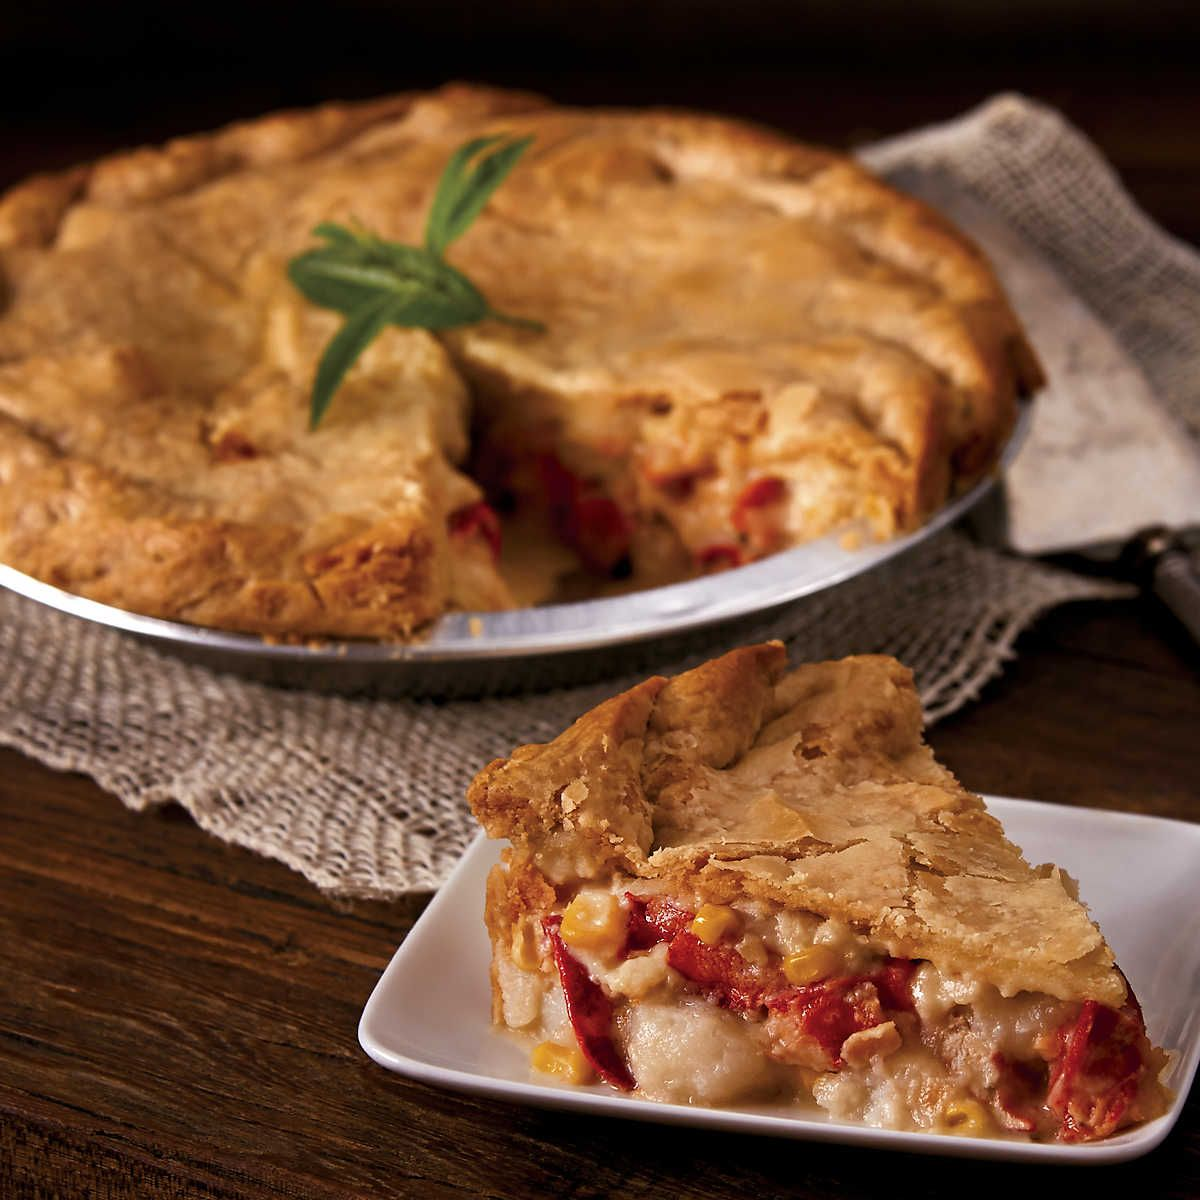 Buy gourmet Lobster Pot Pie, a lobster dinner from Harry & David that's sure to be the hit of any meal, big or small. Made with the finest ingredients.